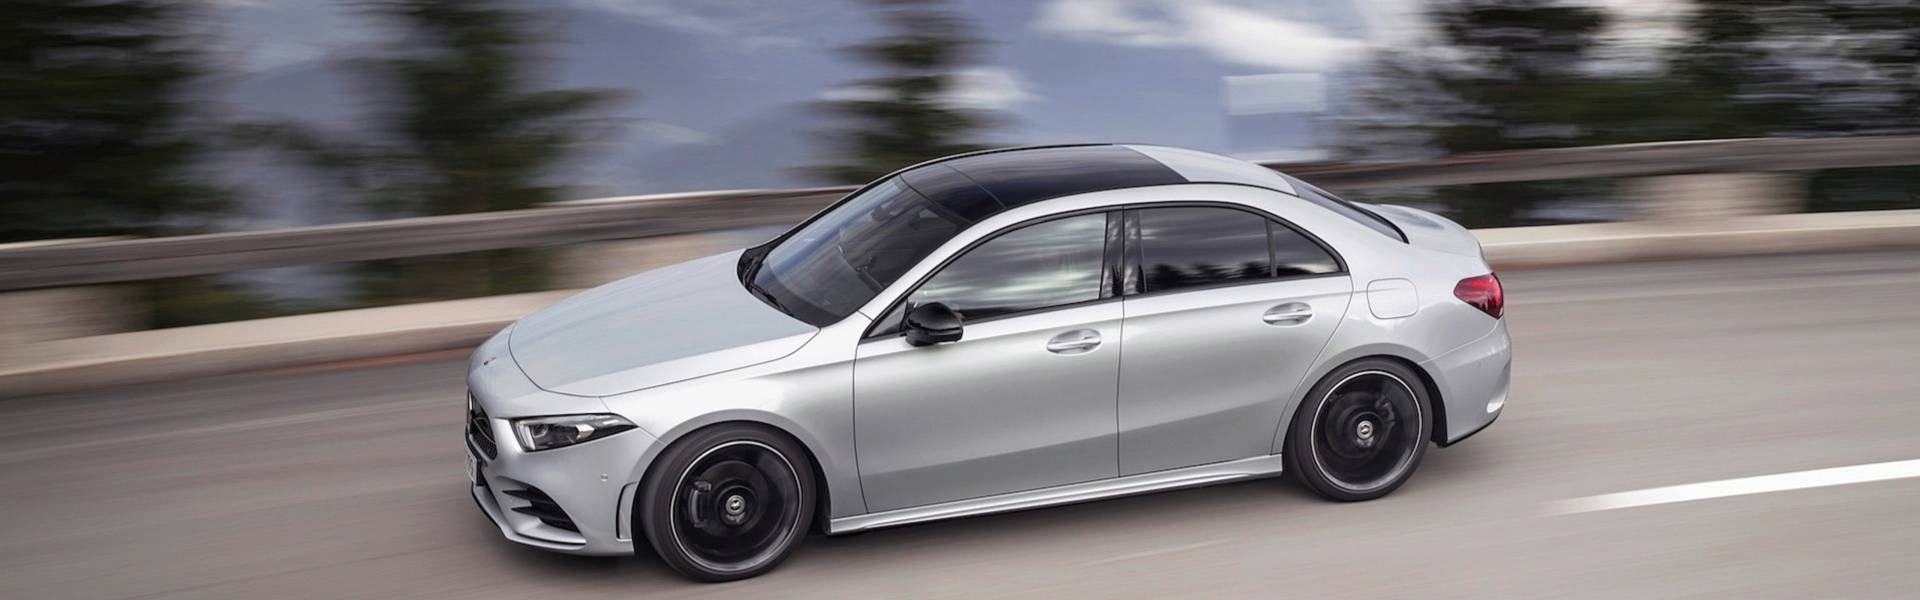 2019-mercedes-benz-a-class-sedan (2).jpg